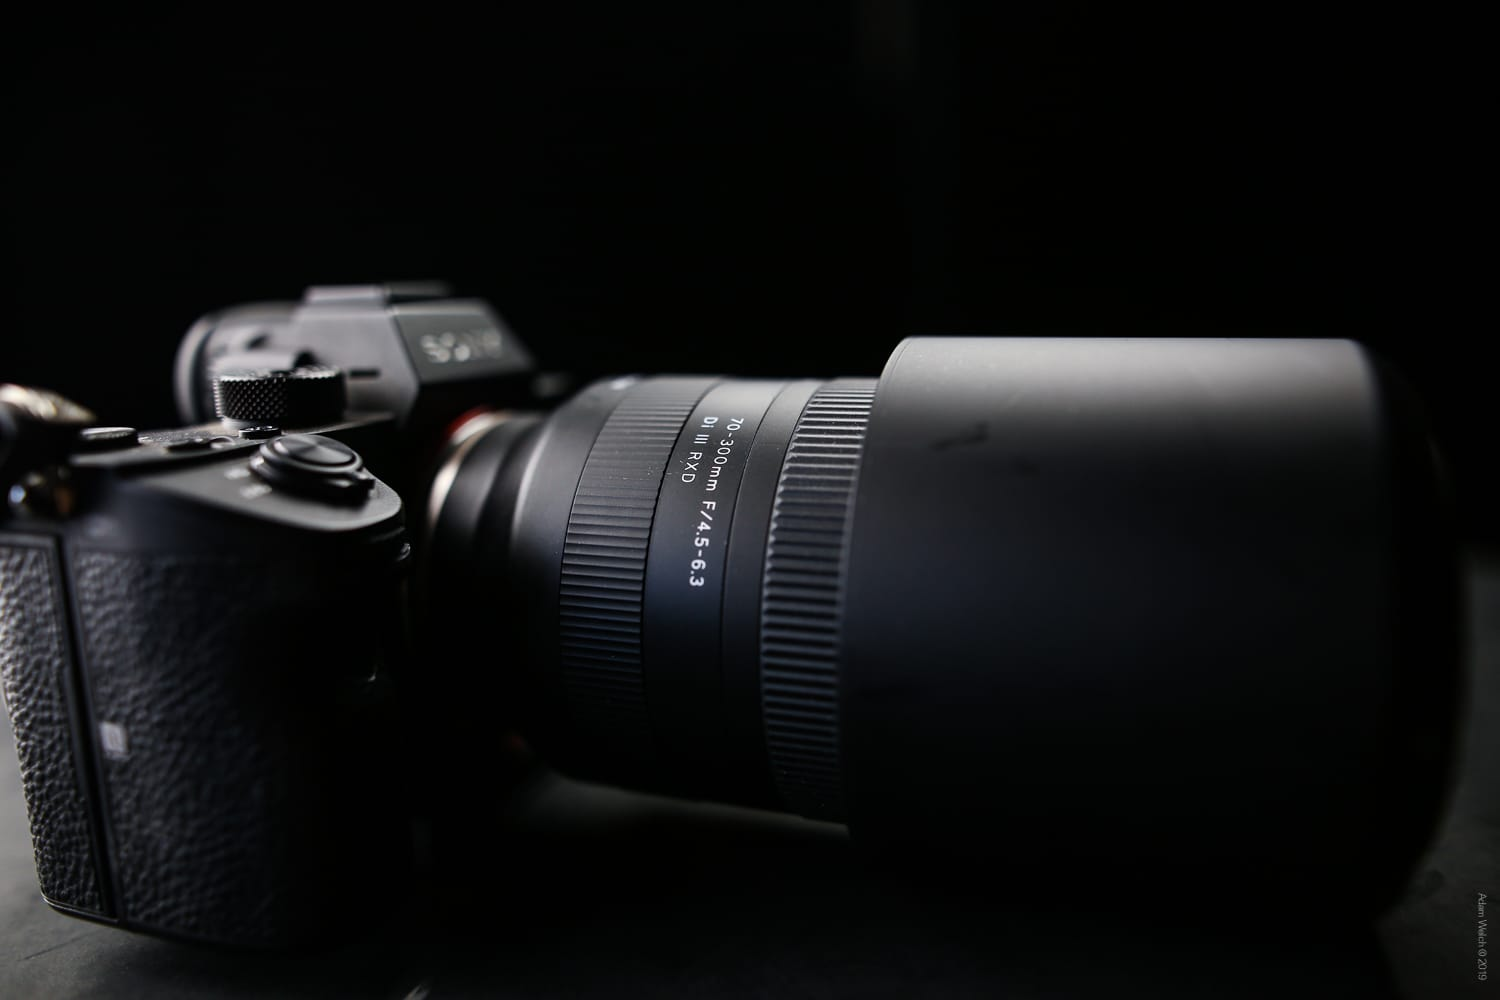 In-Depth Review of the New 70-300mm f/4.5-6.3 DI III RXD Lens from Tamron